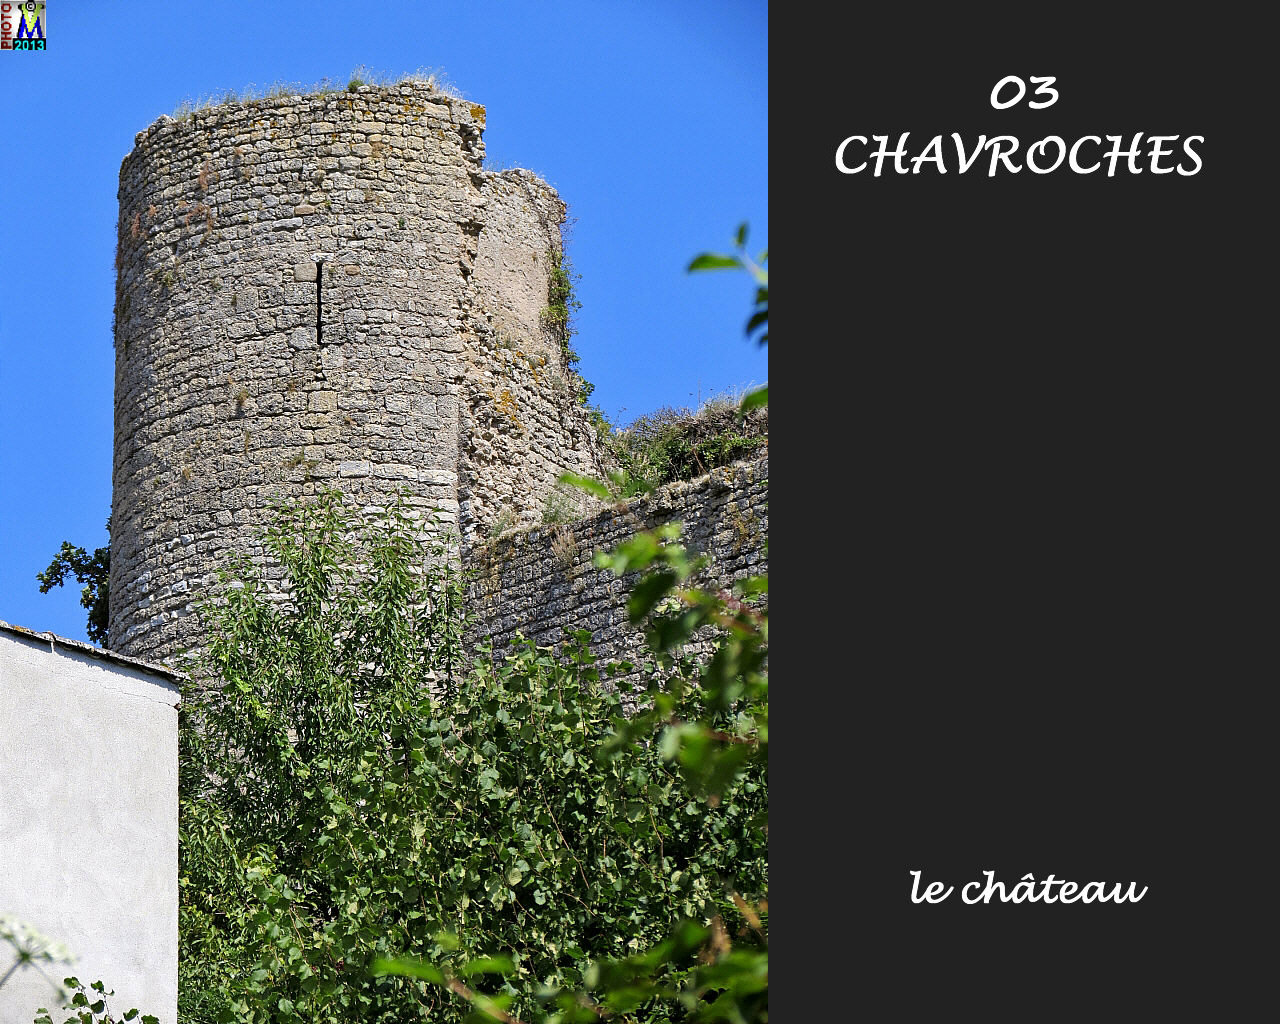 03CHAVROCHES_chateau_104.jpg